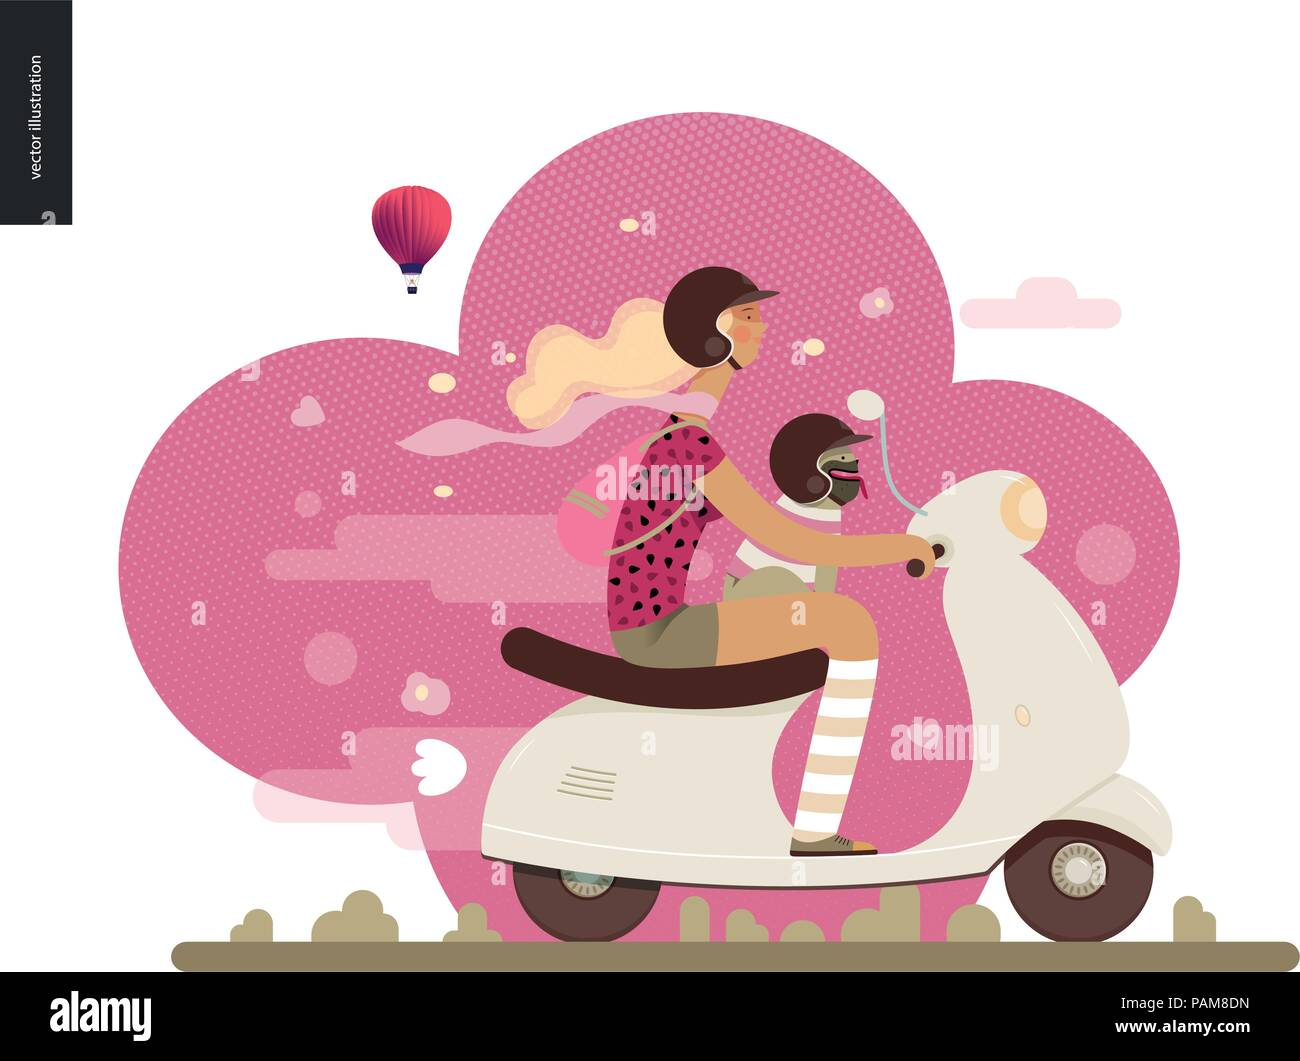 Girl on a scooter - flat vector concept illustration of blonde girl wearing helmet riding a white scooter, a french bulldog on her lap wearing small h Stock Vector